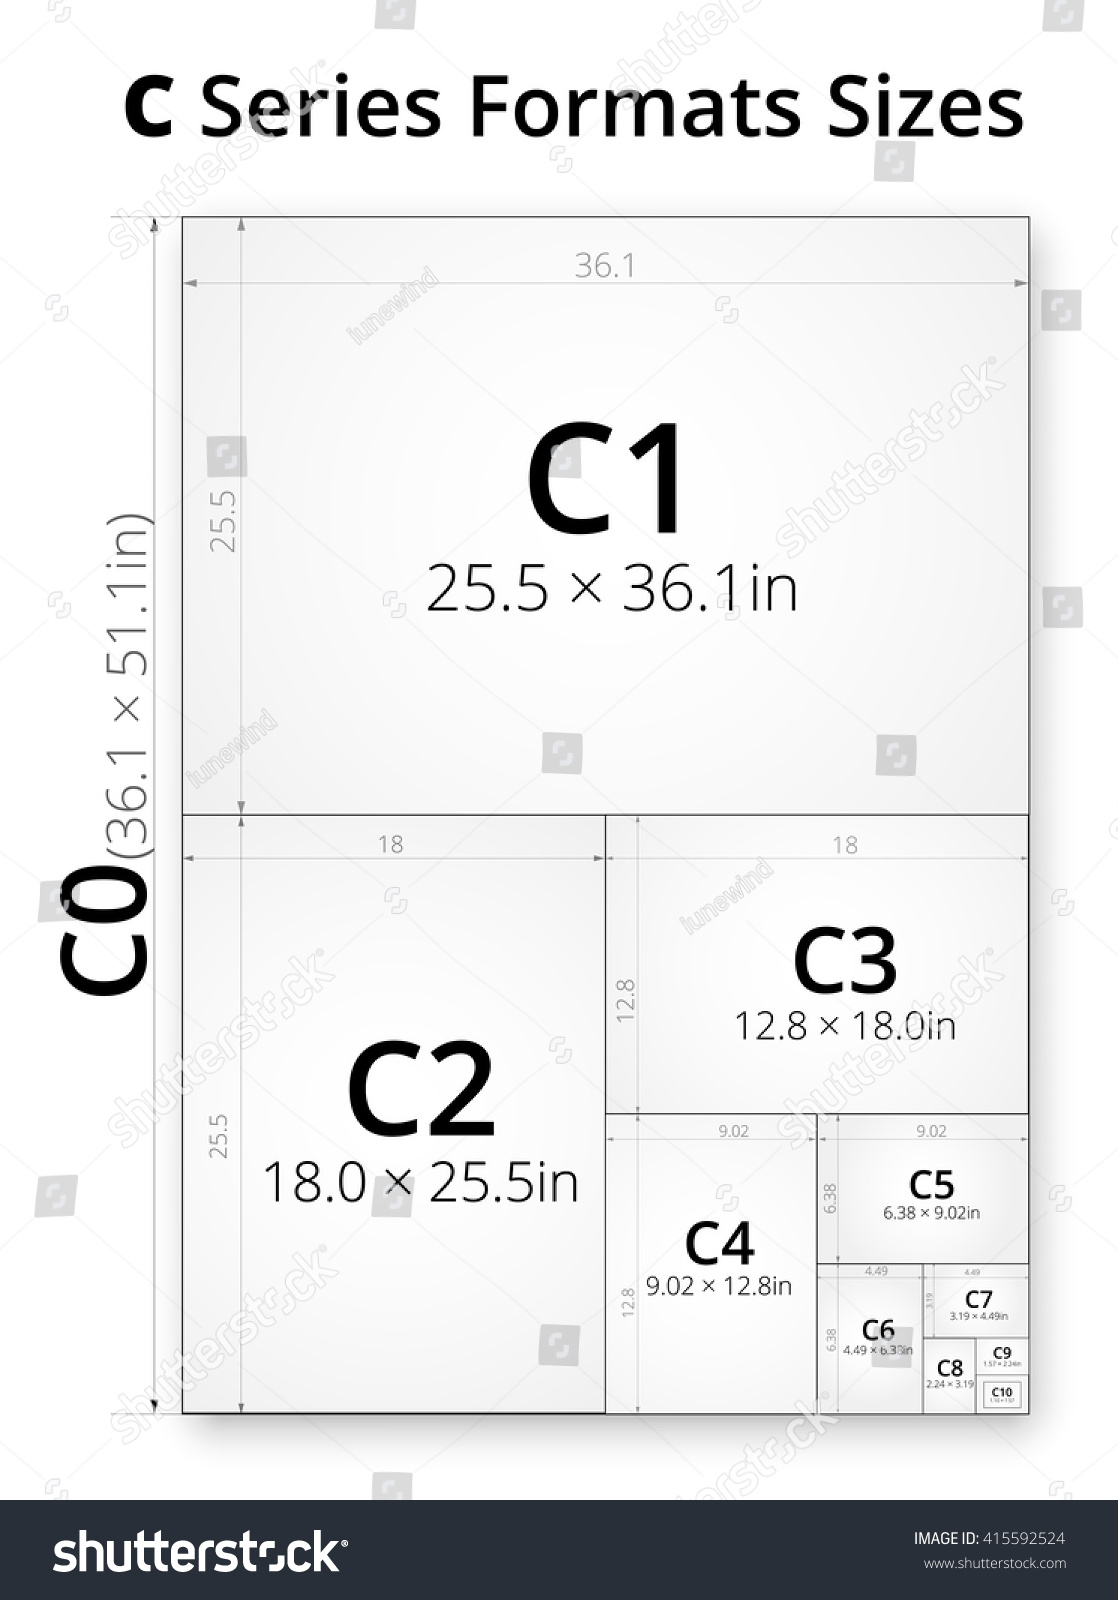 size of series c paper sheets comparison chart from c0 to c10 format in inches